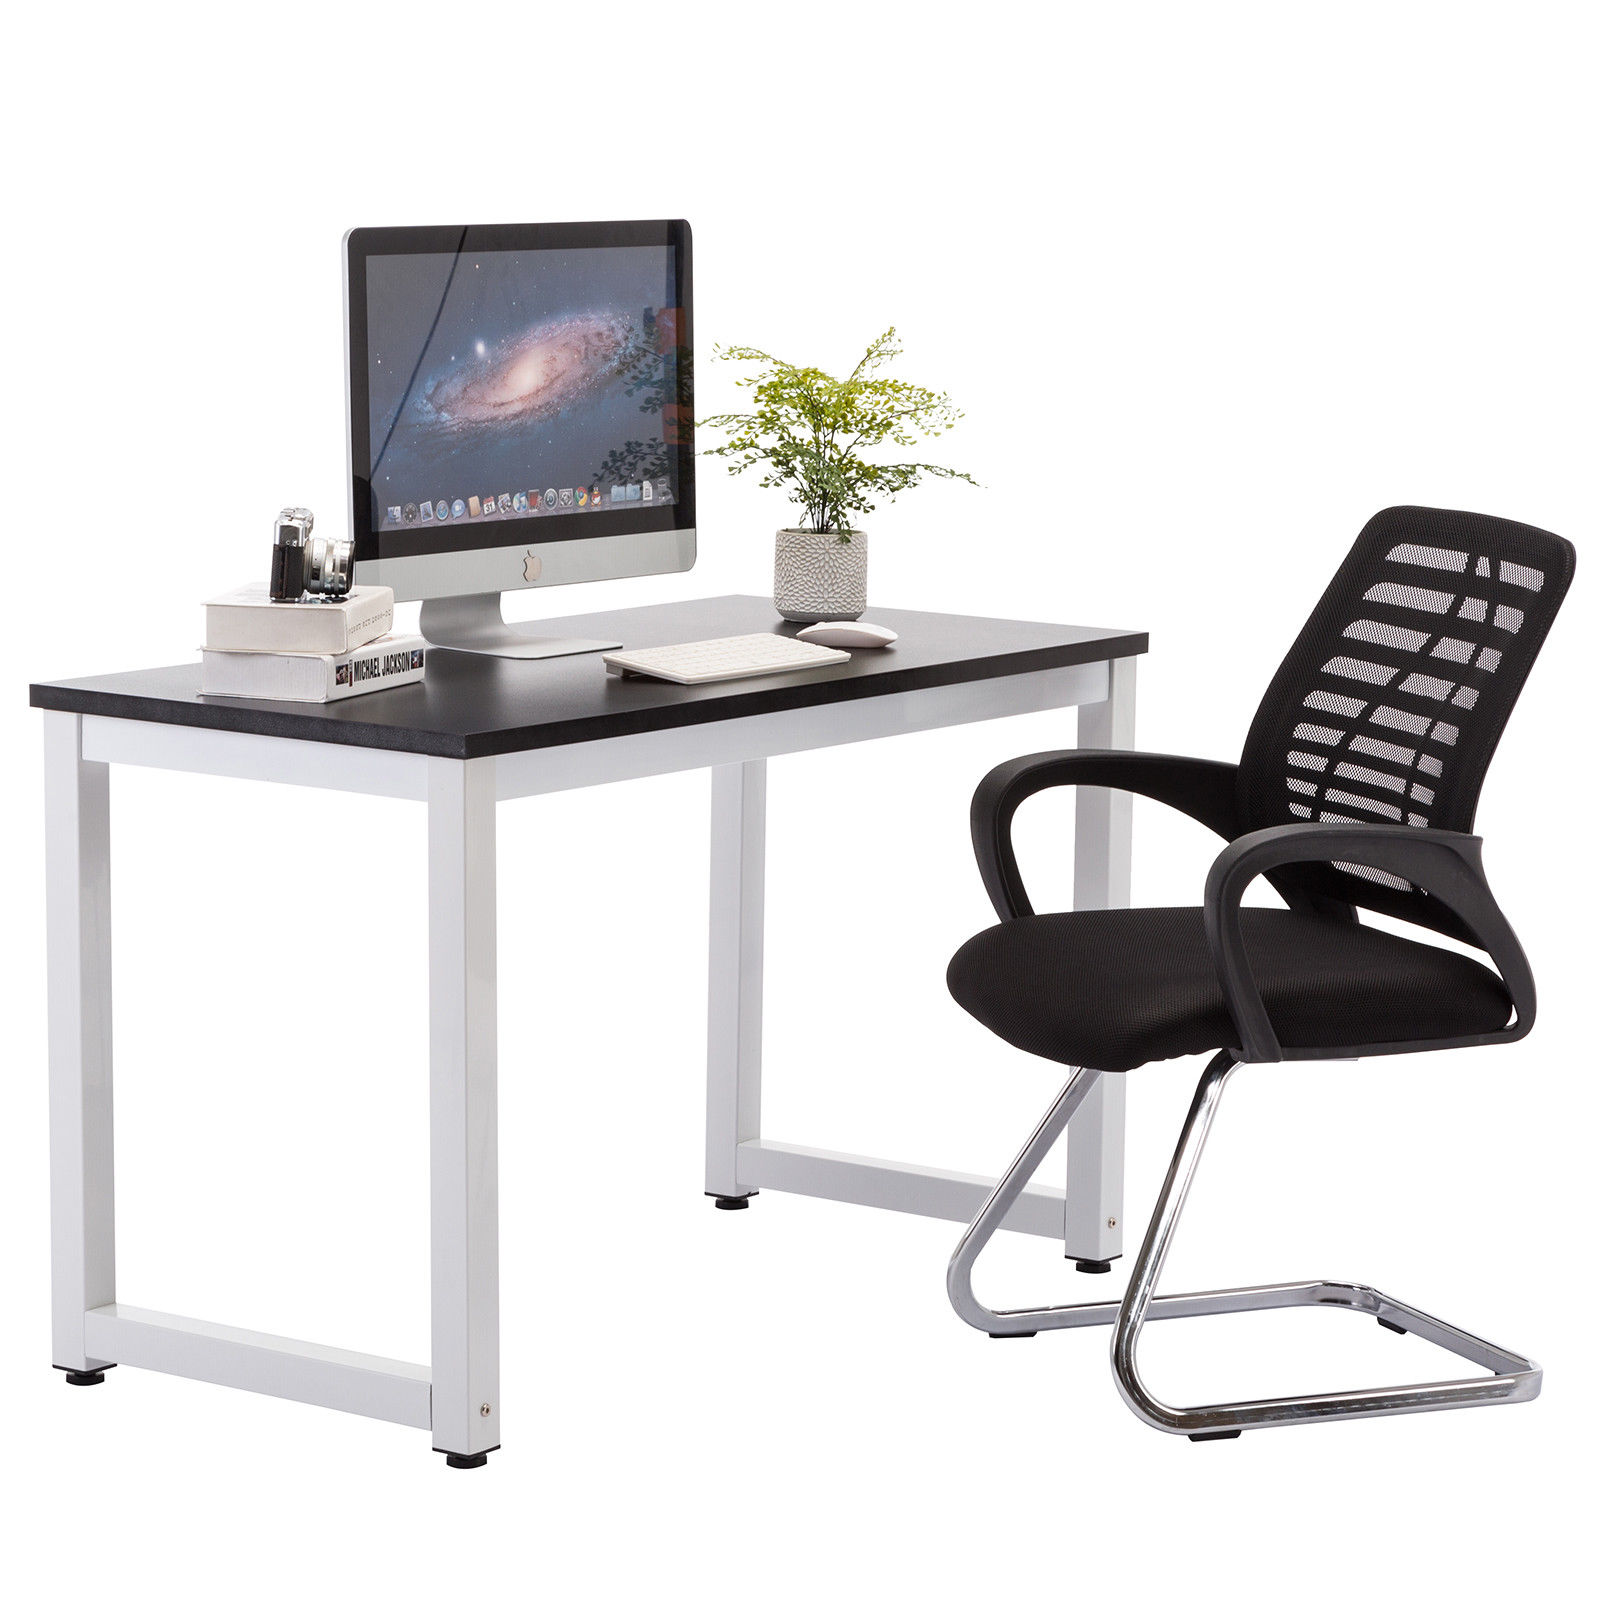 Workstation Furniture Details About Black Computer Desk Home Office Desk Work Table Pc Table Workstation Furniture